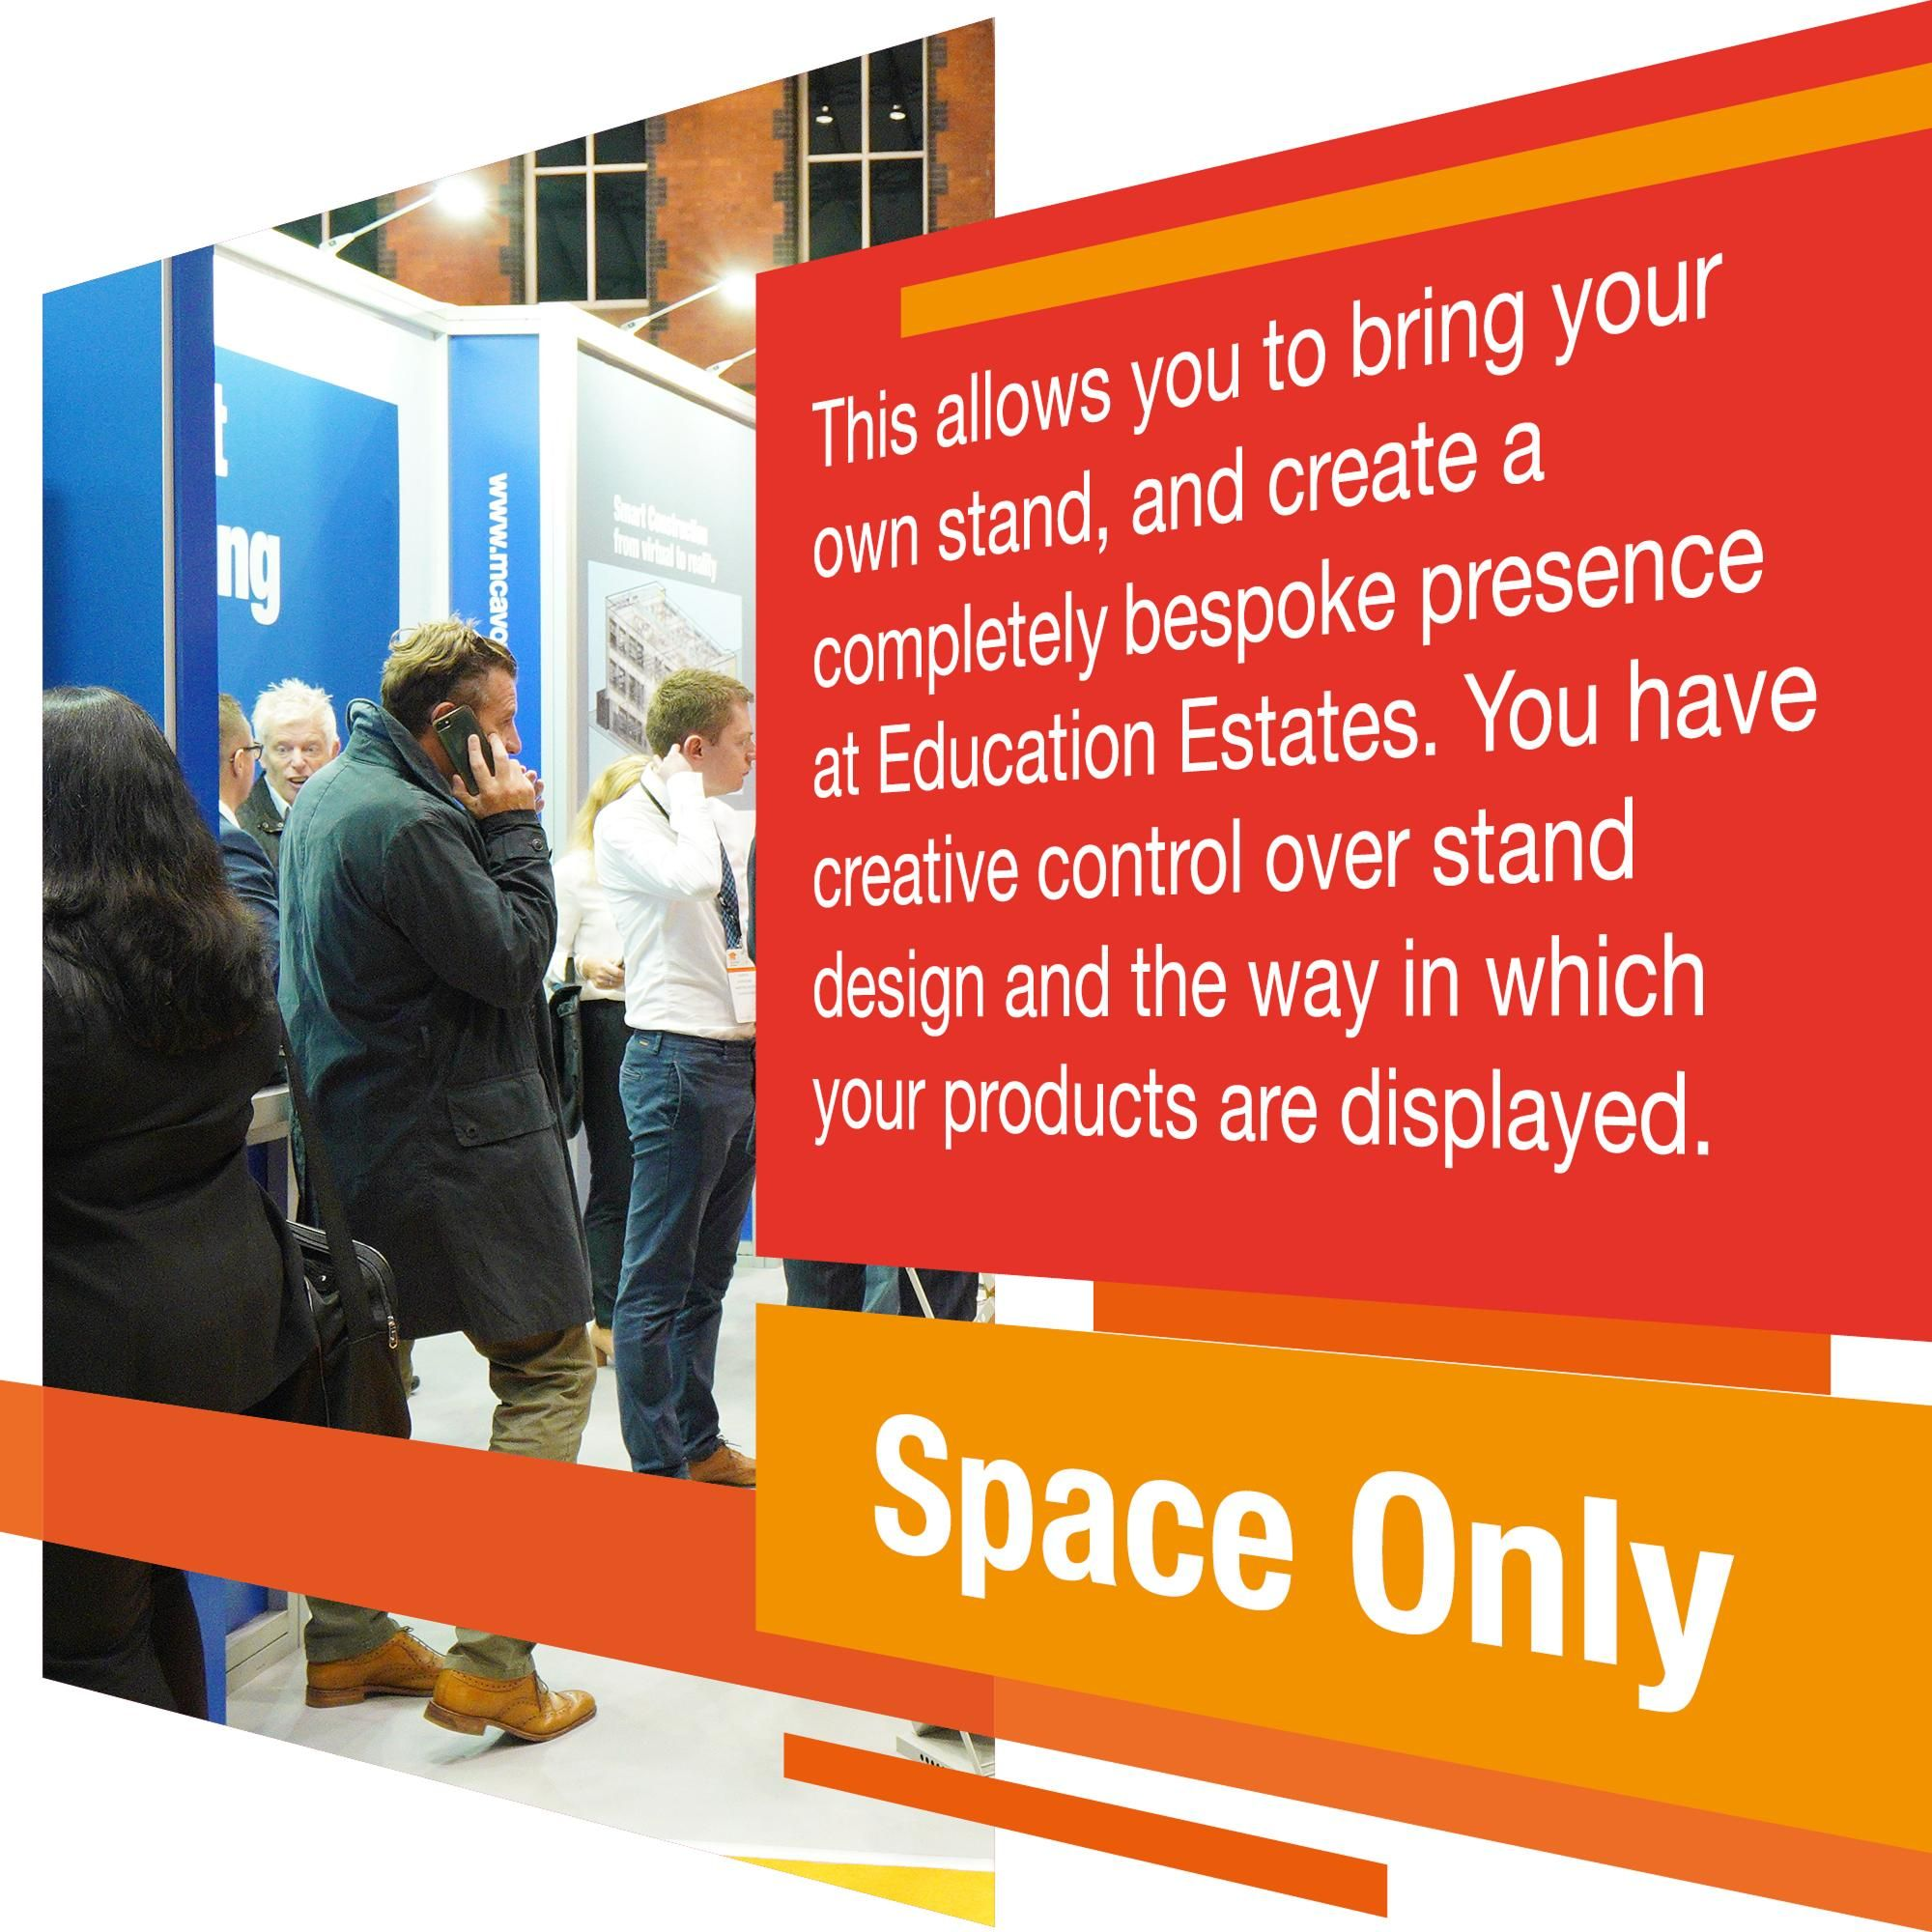 Space only